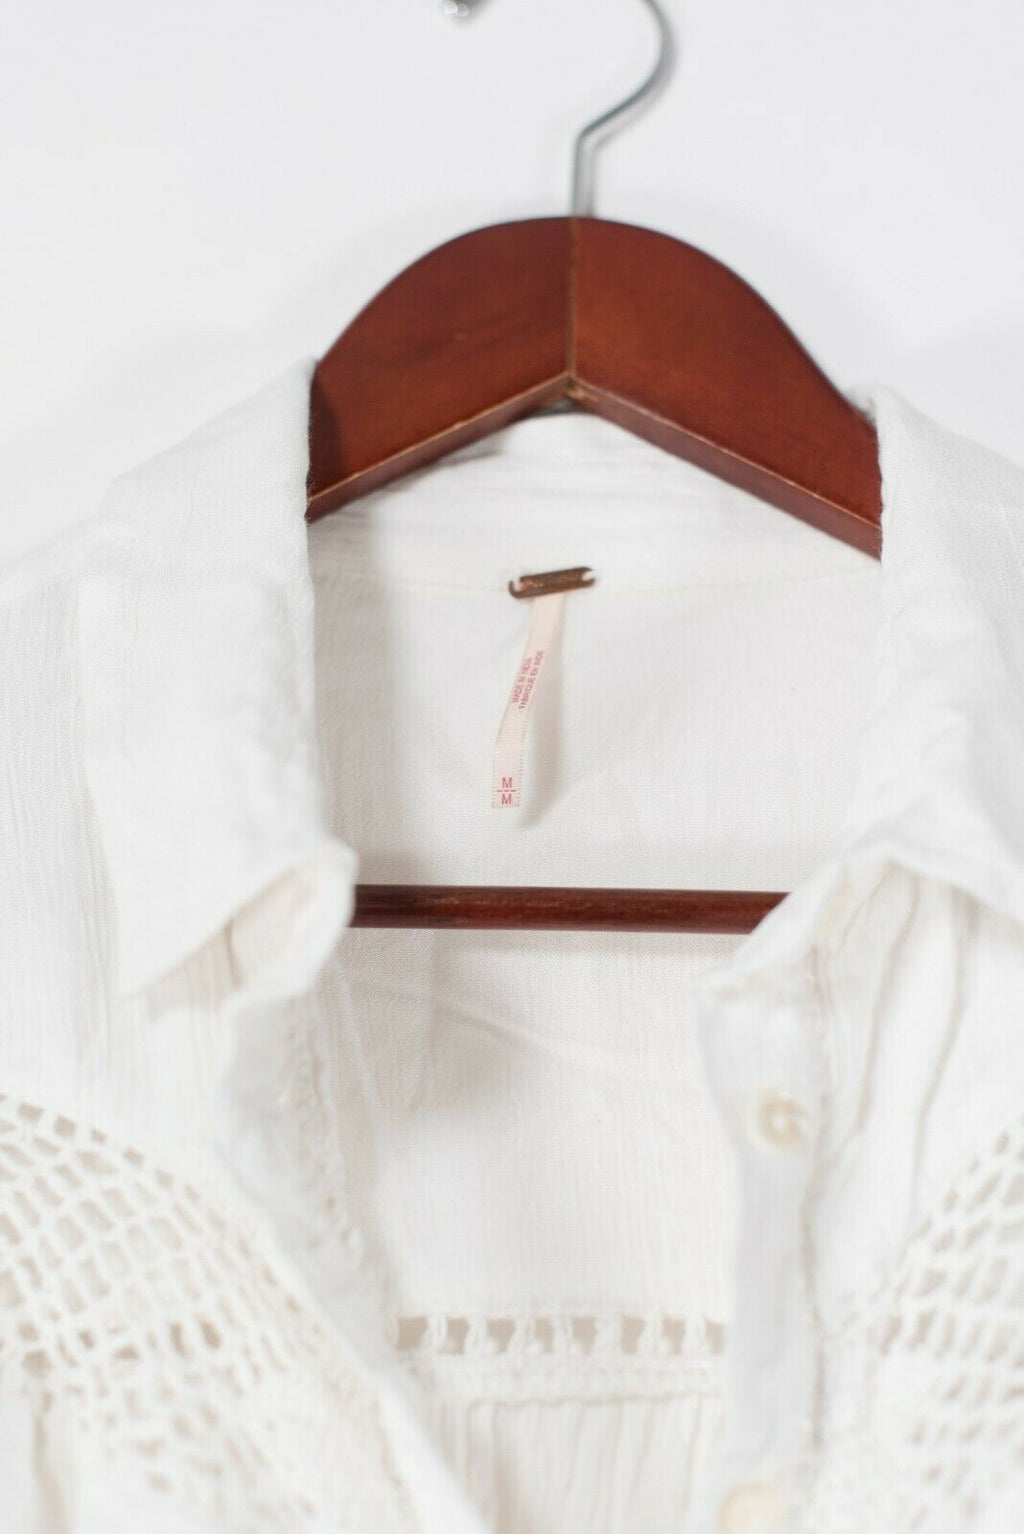 Free People Women's Medium White Blouse Crochet Button Front Shirt Collared Top